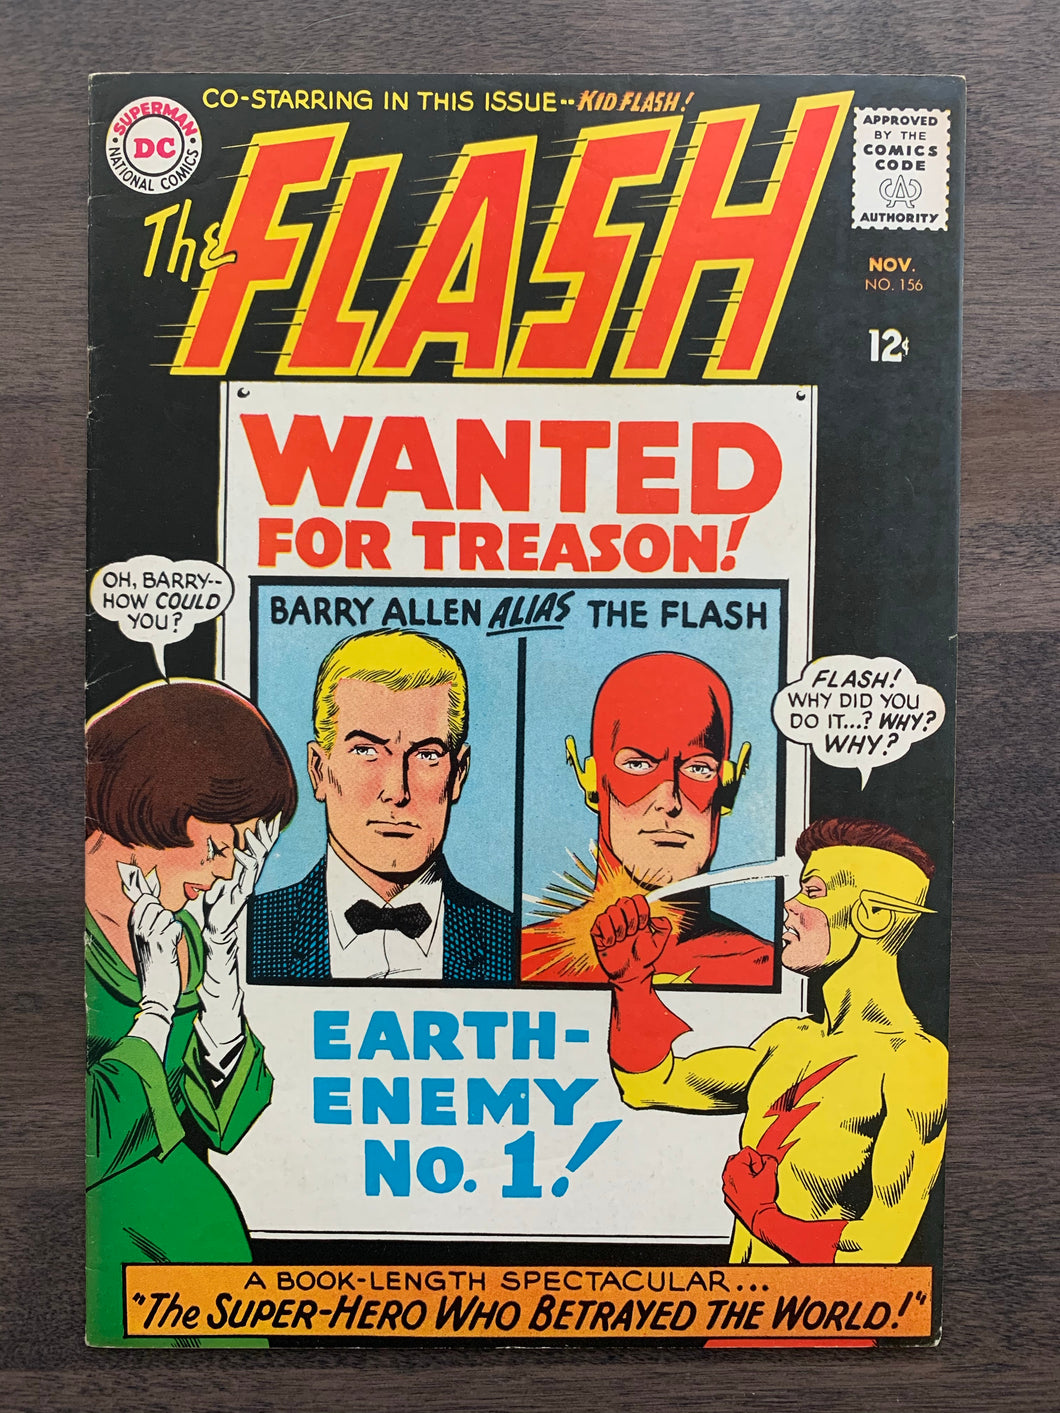 Flash #156 - Kid Flash